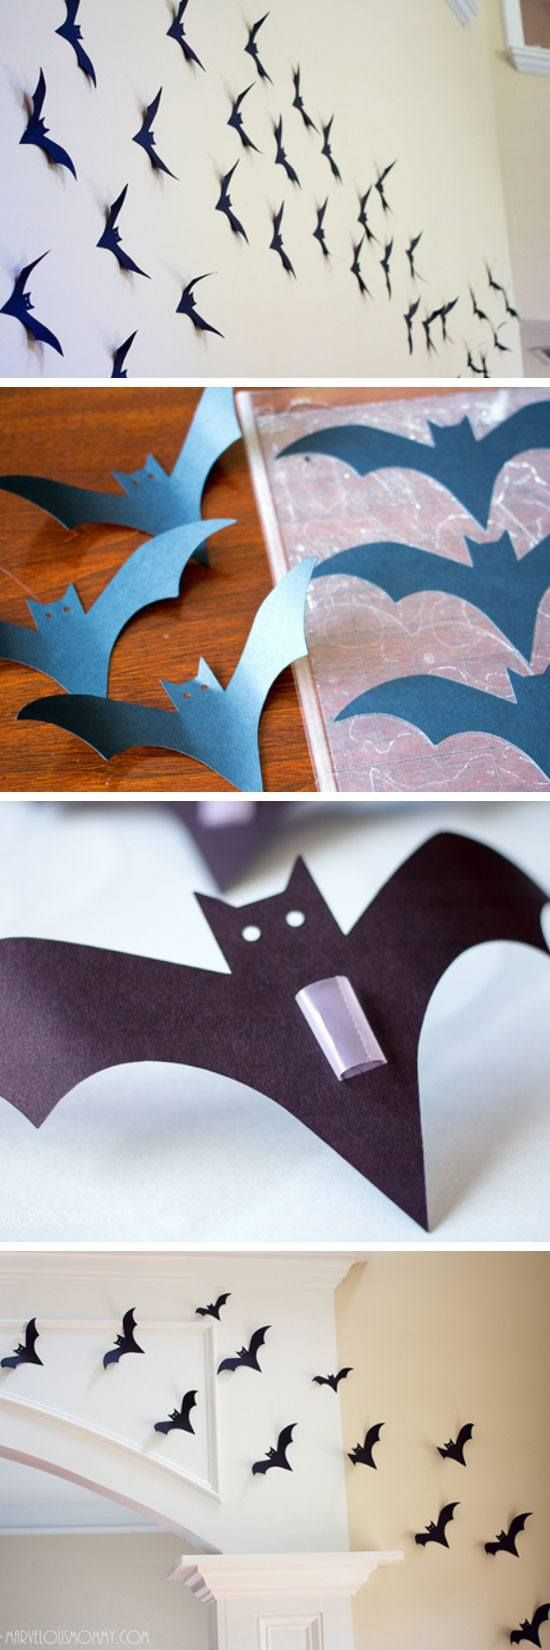 Mejores 63 imgenes de halloween en pinterest comida de halloween 25 diy halloween decorating ideas for kids on a budget solutioingenieria Choice Image